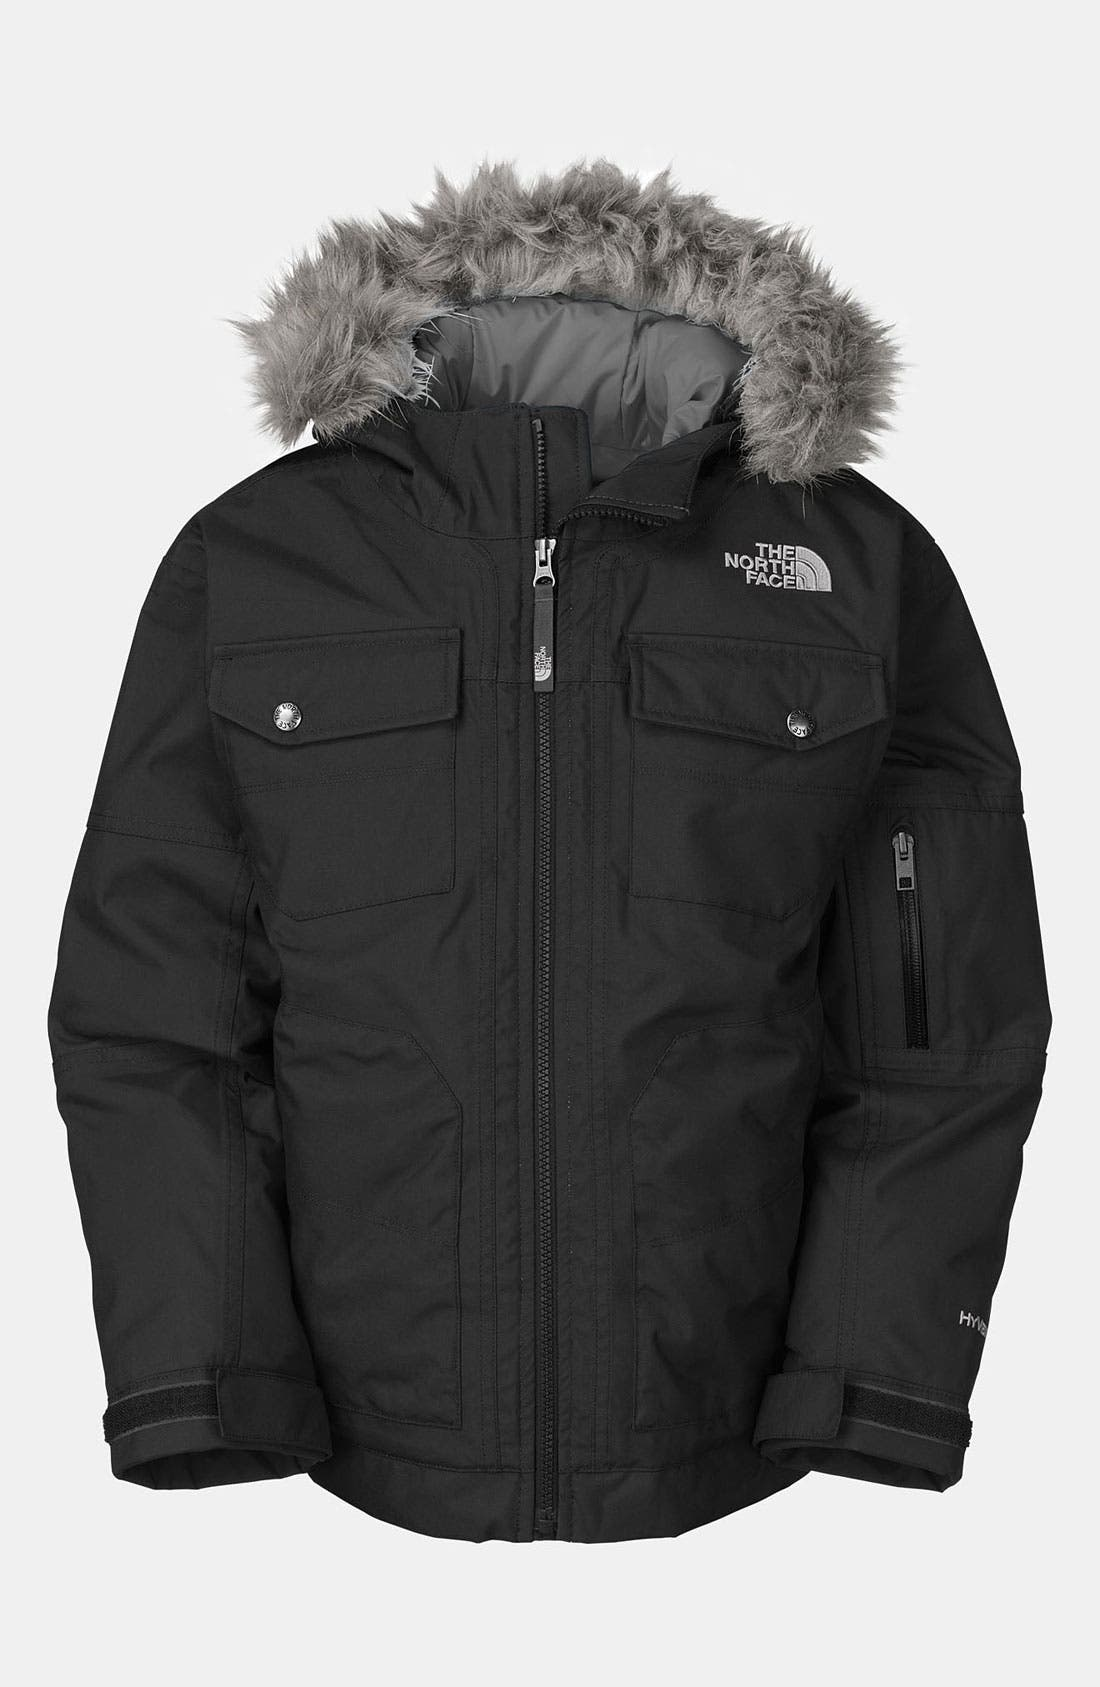 Main Image - The North Face 'Yellowband' Parka (Little Boys)